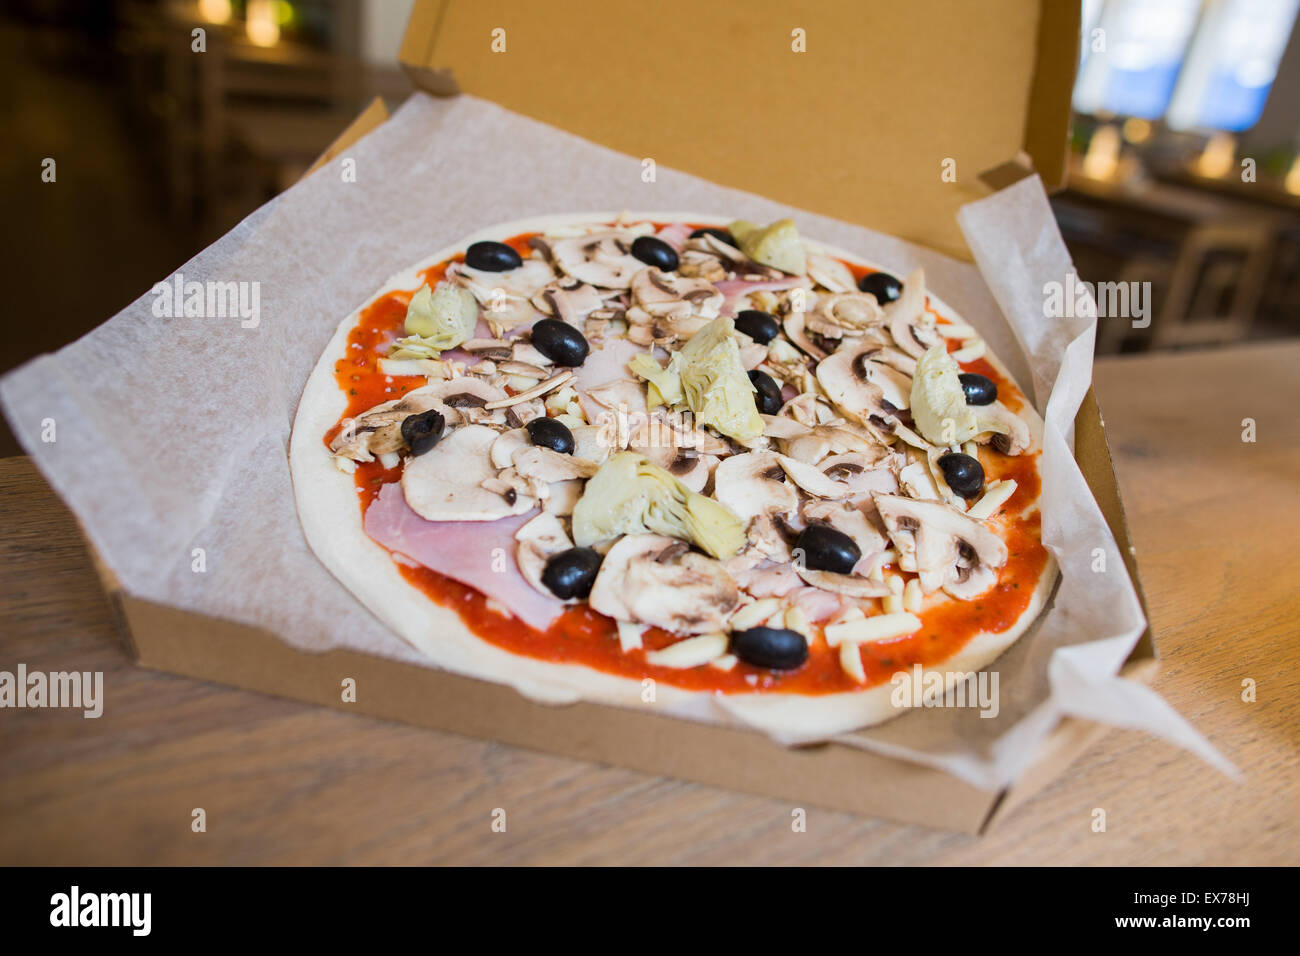 Bonn germany 7th july 2015 a raw pizza lay on the table at the bonn germany 7th july 2015 a raw pizza lay on the table at the vapiano headquaters in bonn germany 7 july 2015 the restaurant chain hopes in the sciox Images